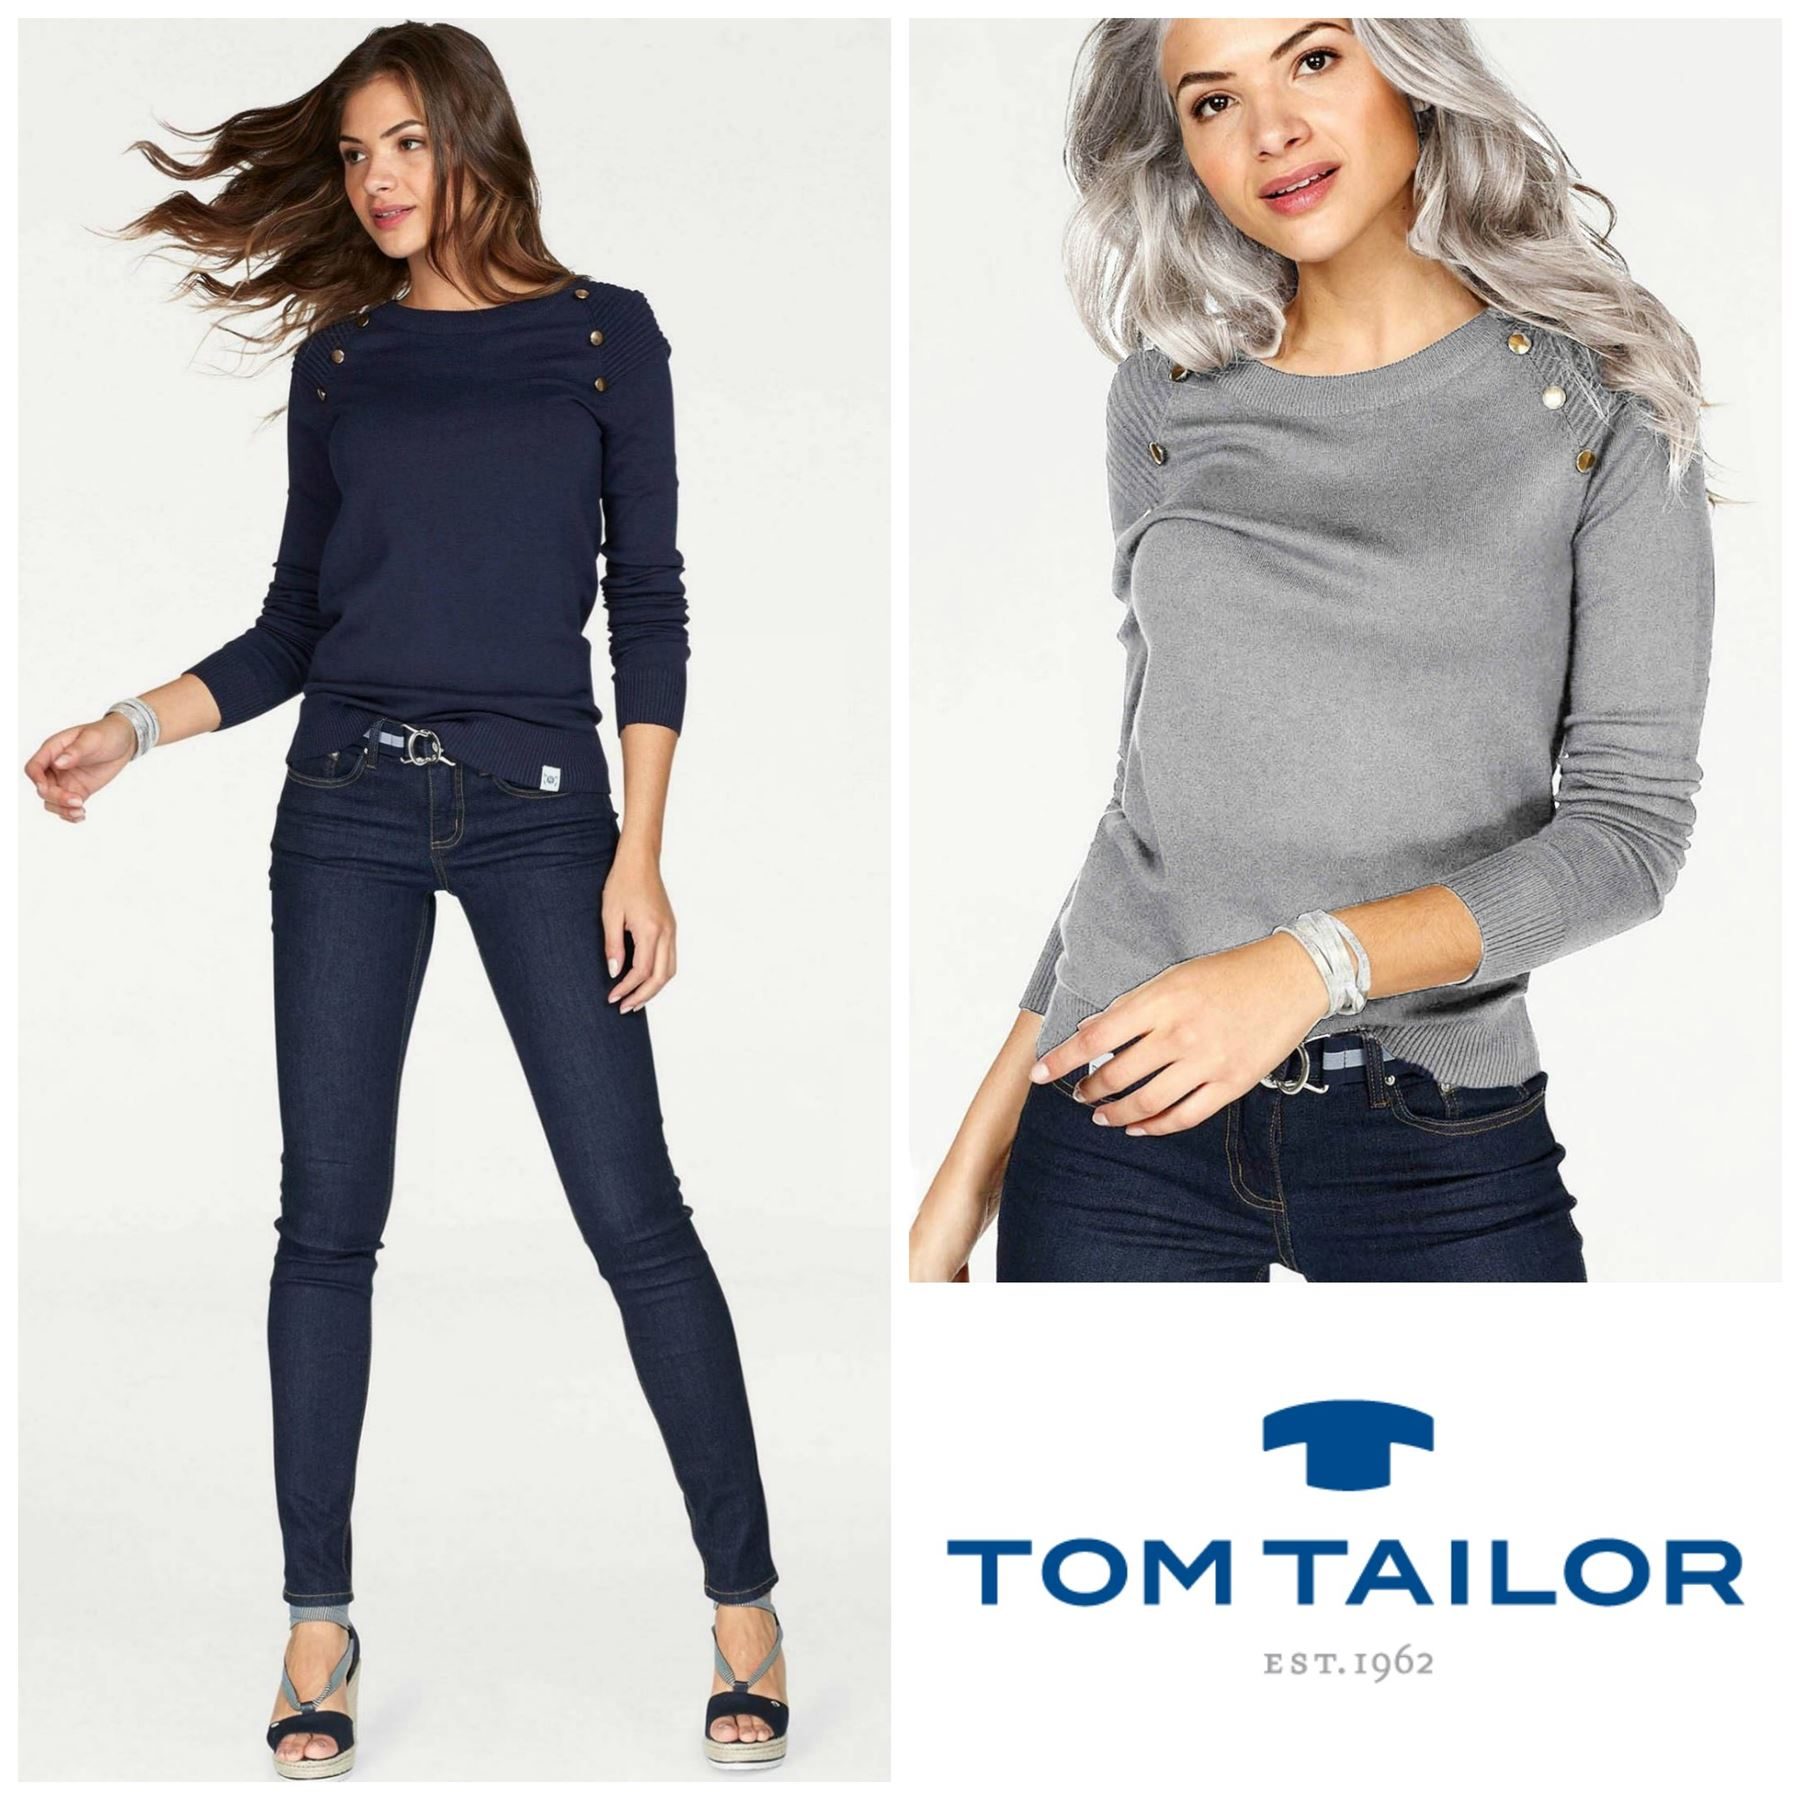 Tom Teiler Details About Ex Tom Tailor Womens Button Shoulder Crew Neck Jumper In Navy Ivory